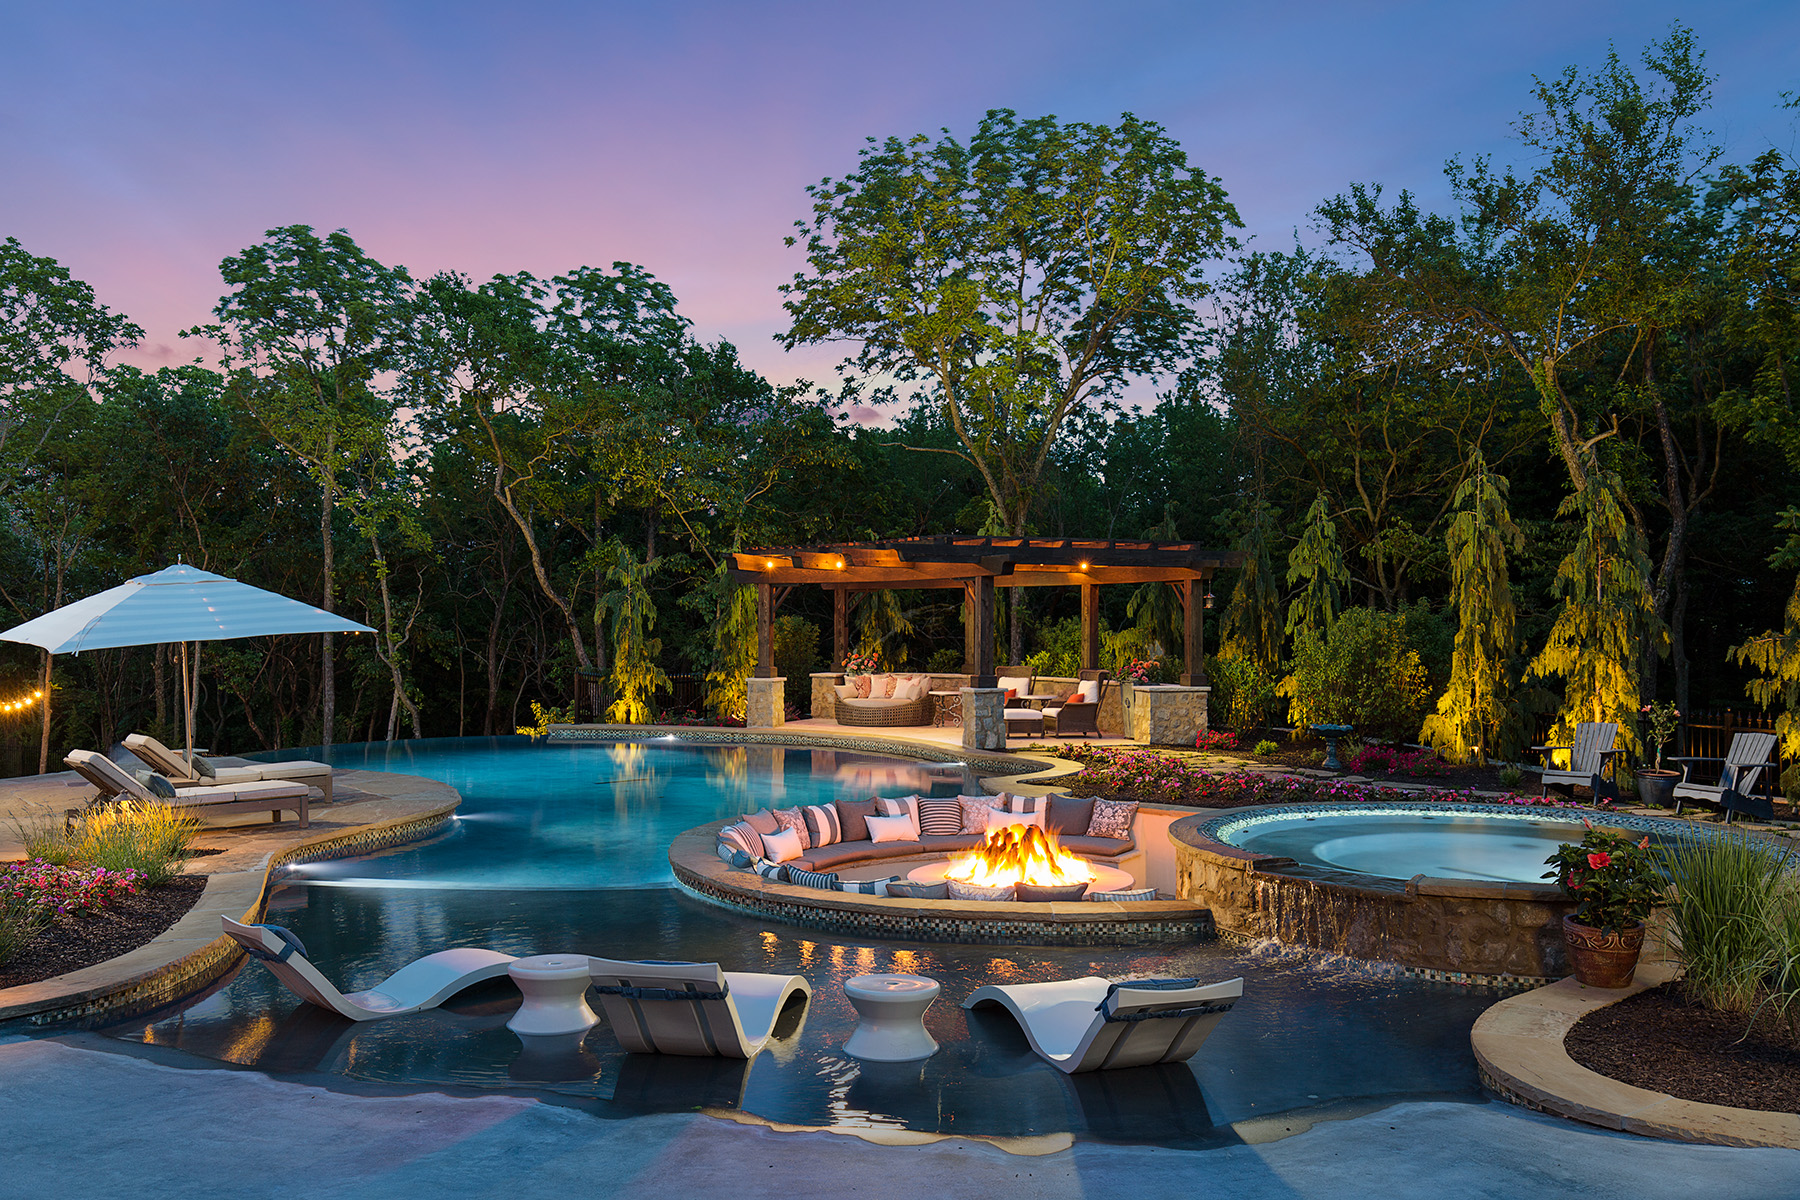 Shawnee Backyard Oasis